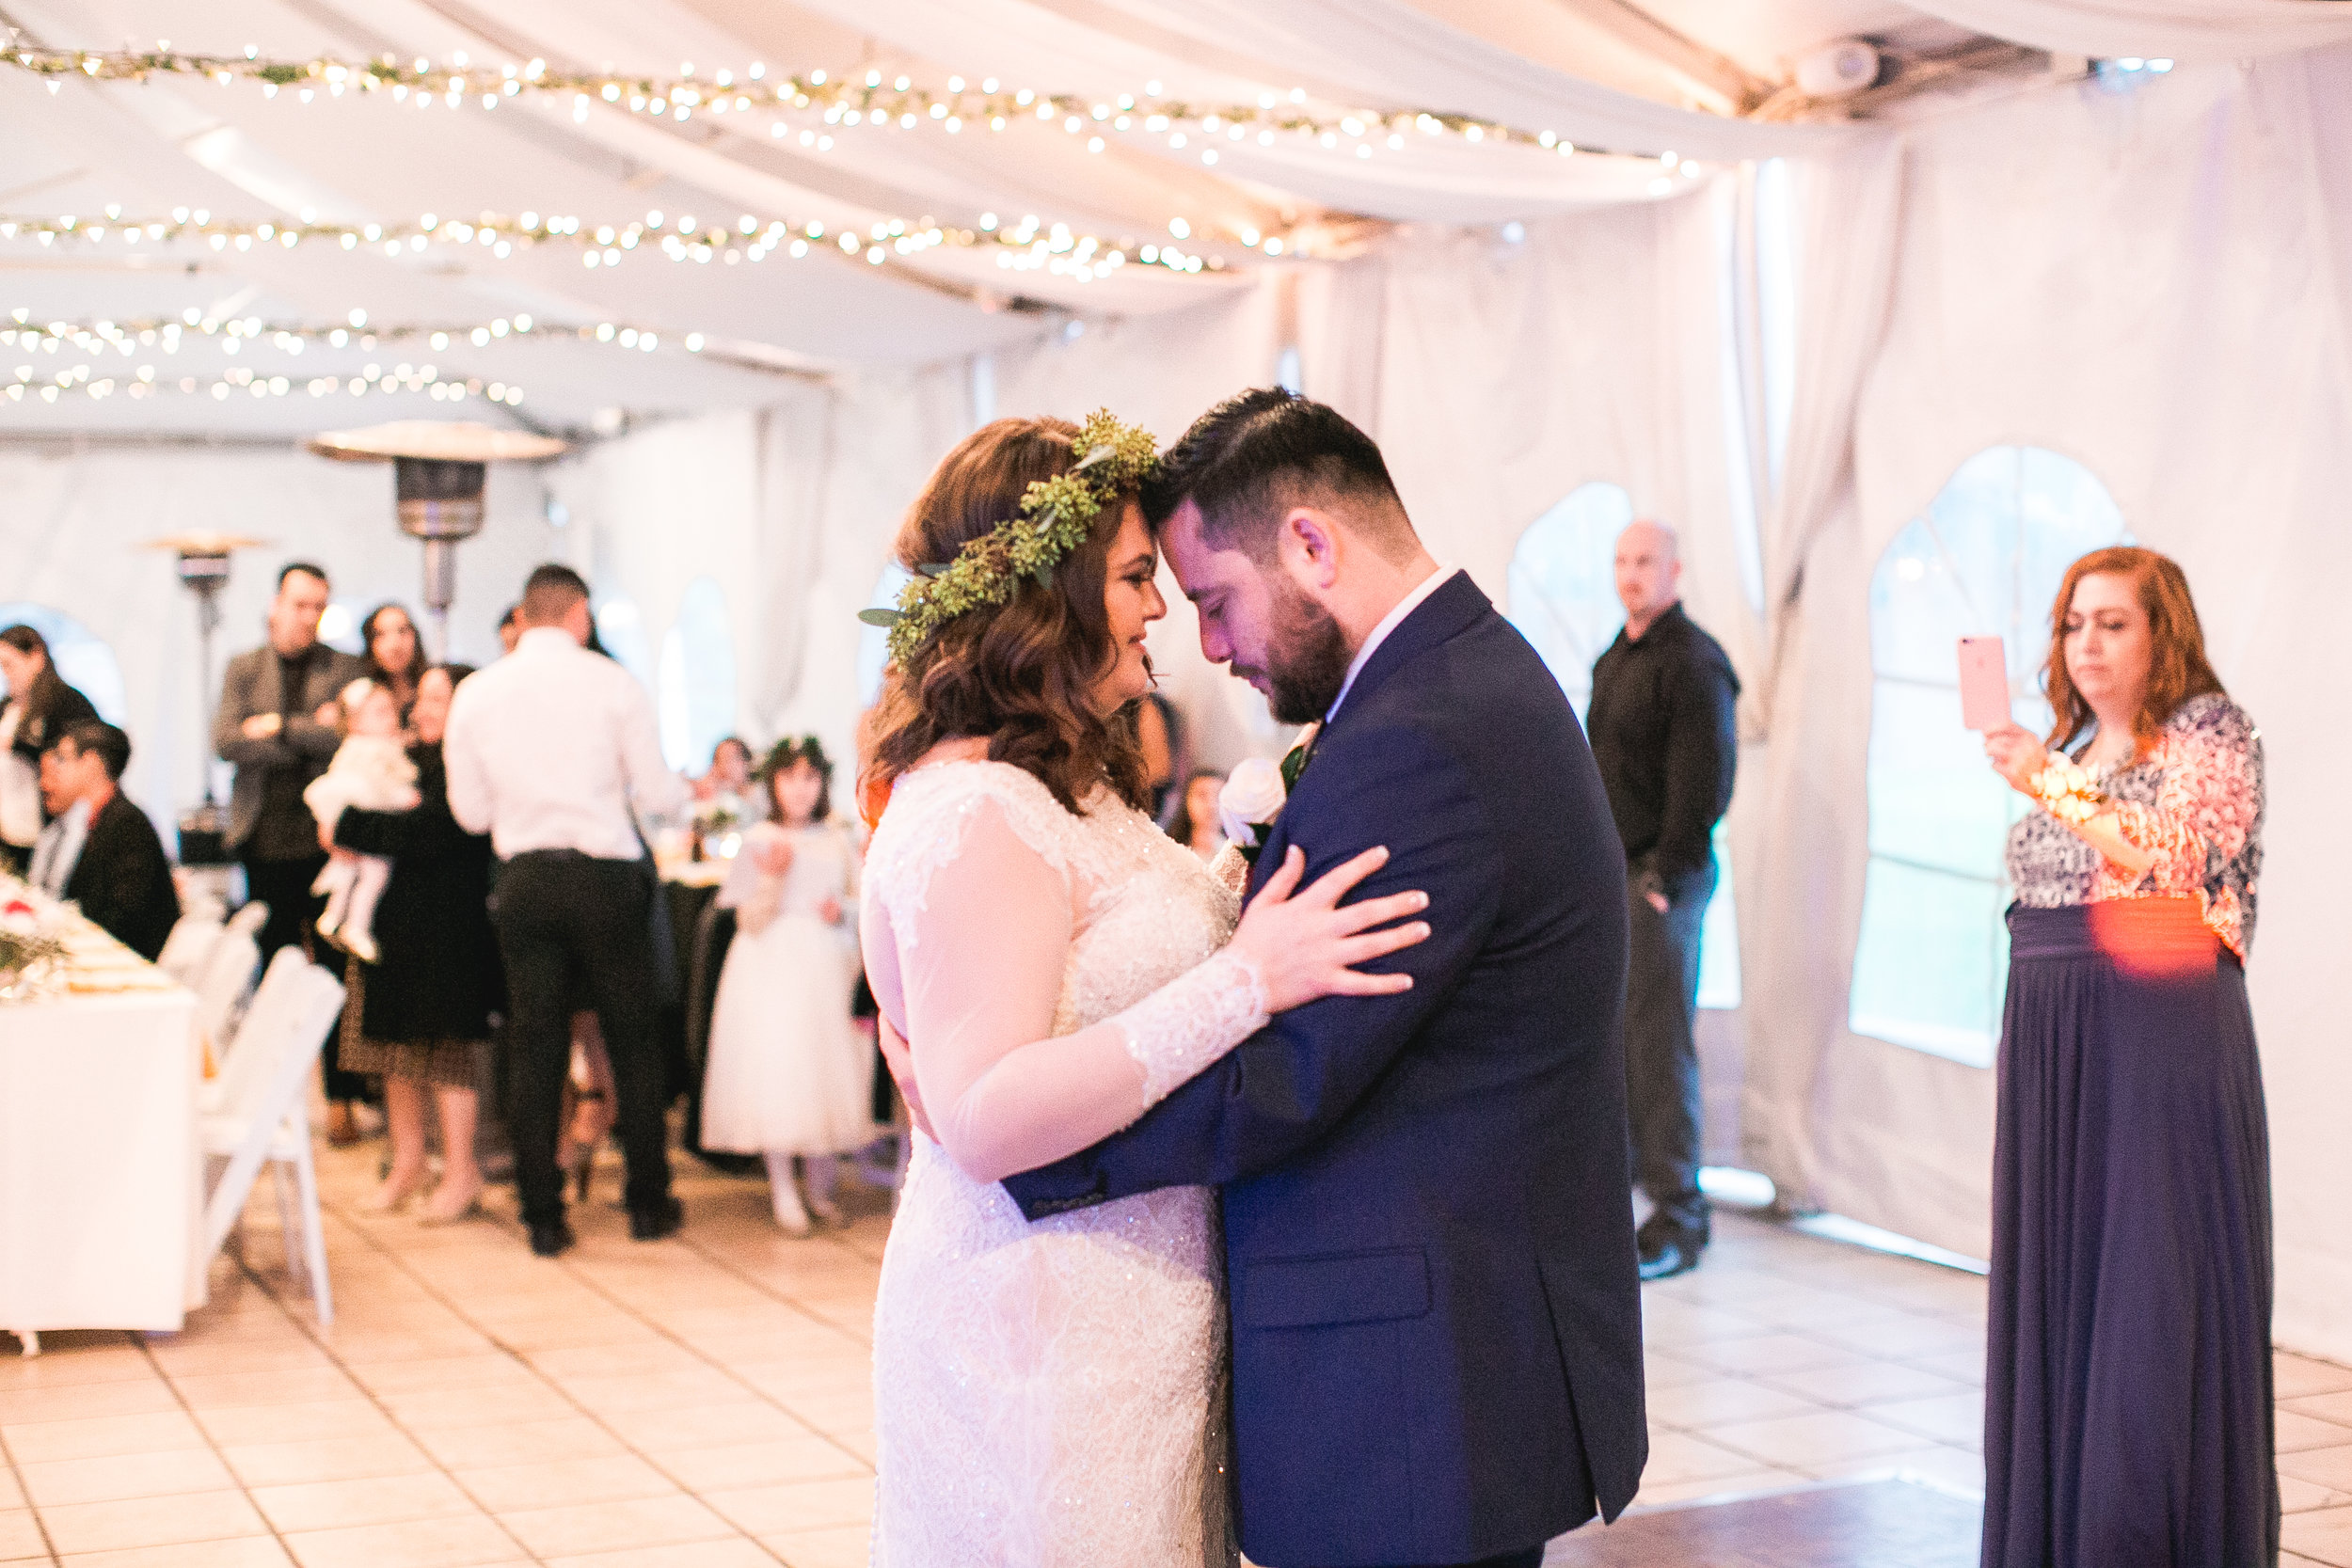 Sometimes, the reception lighting can create unpleasant colors and shadows. This reception lighting created a romantic glow so I decided to forego my off-camera flash equipment.